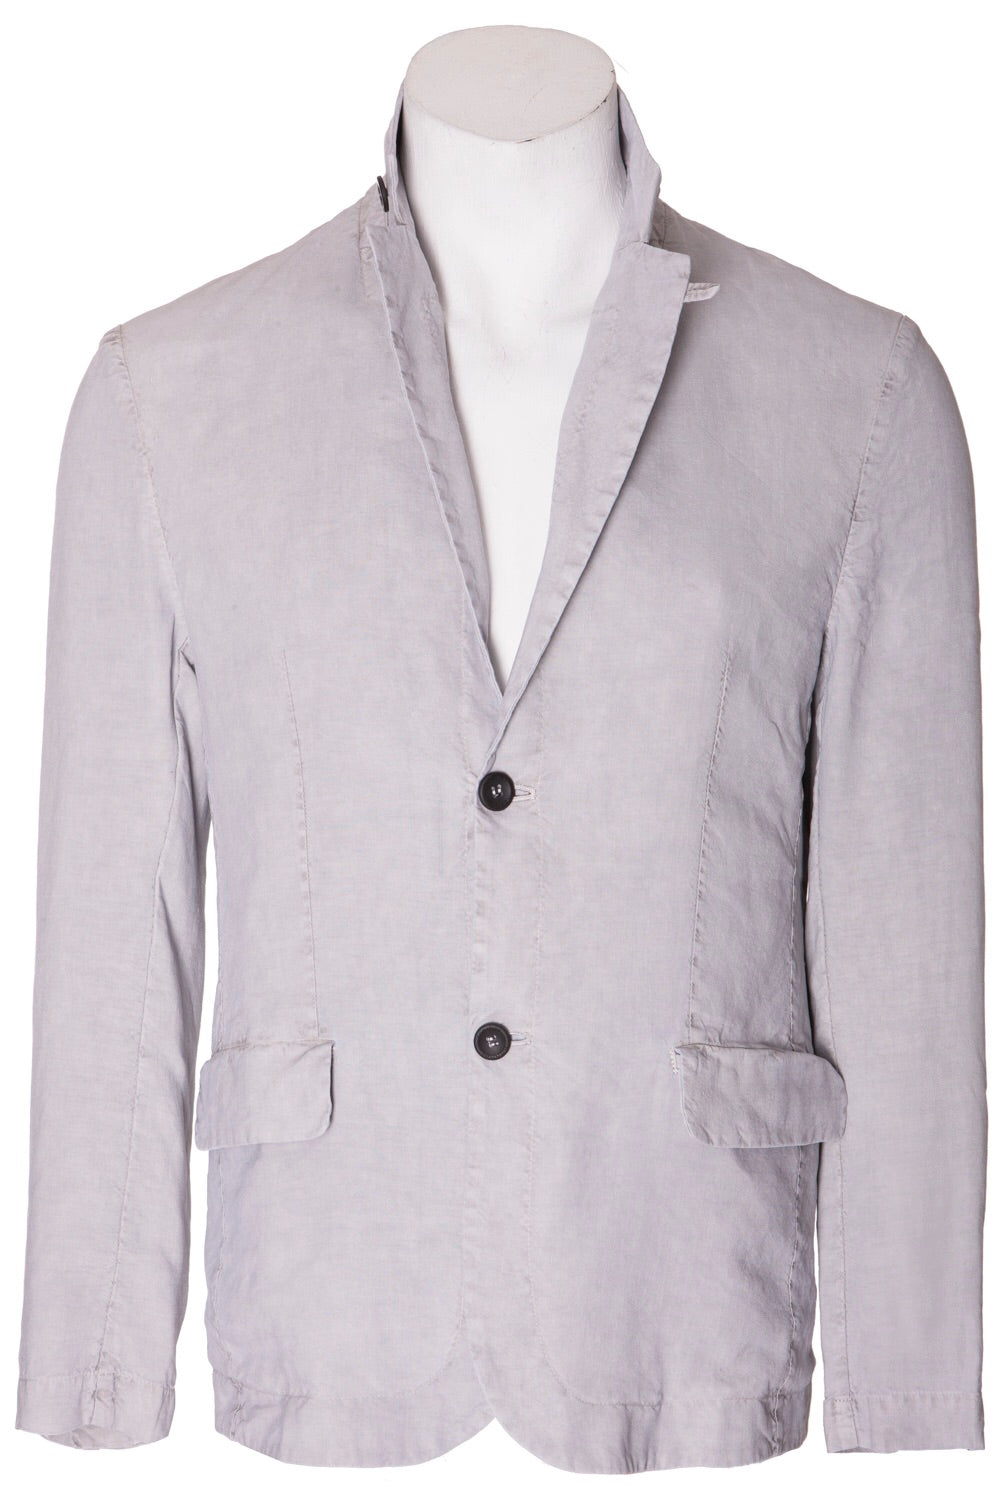 Hannes Roether Silk / Linen Jacket - LAST ONE!